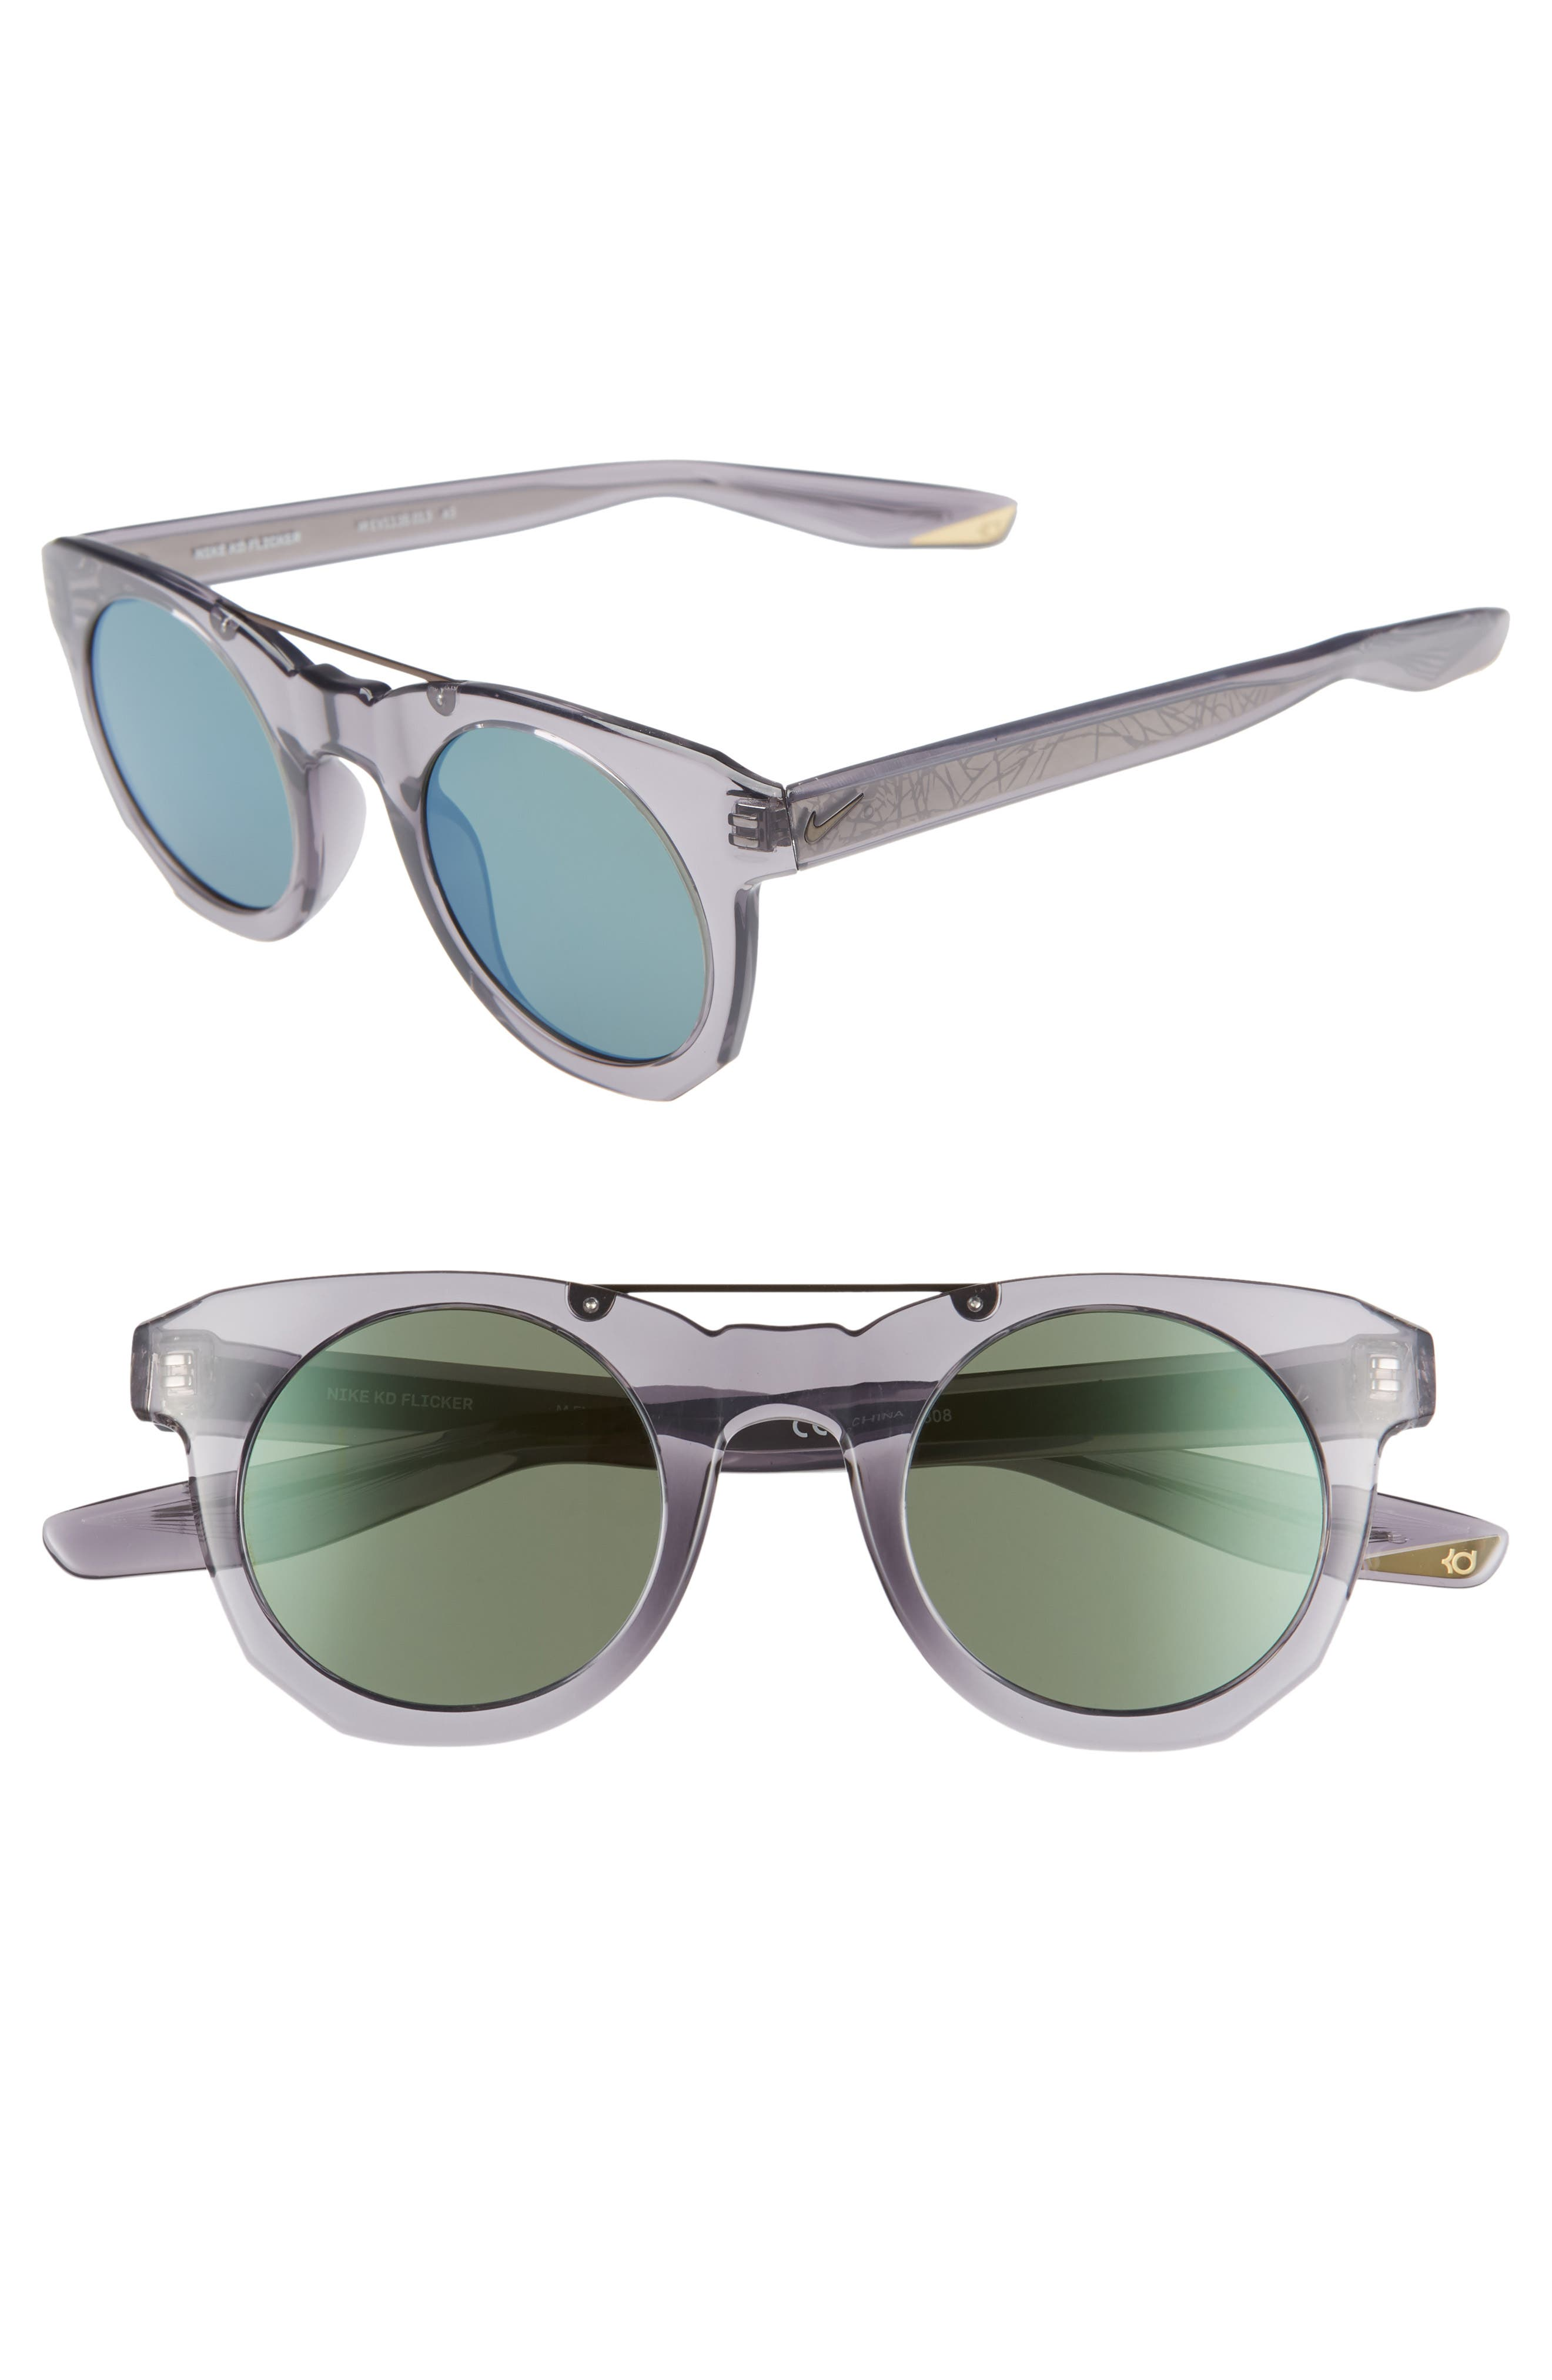 Nike Kd Flicker 4m Round Sunglasses - Gunsmoke/ Green